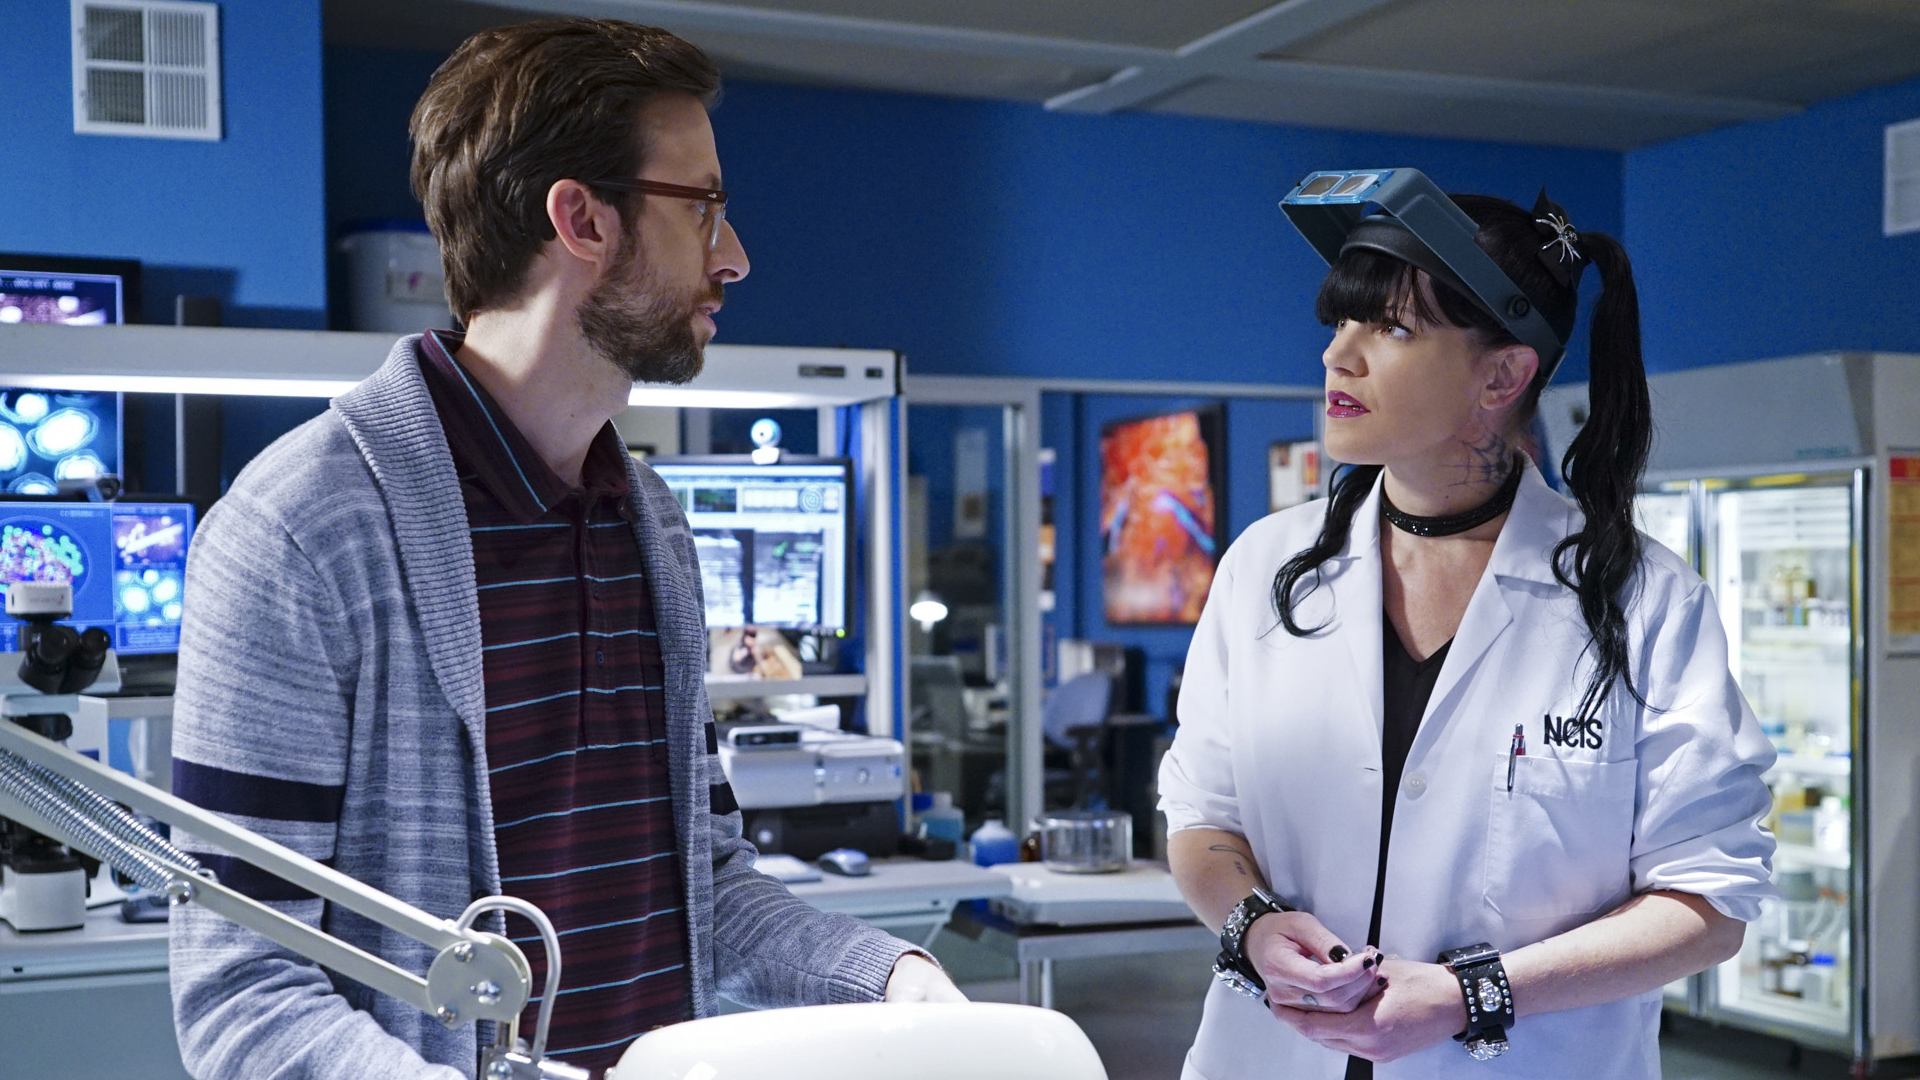 Abby Sciuto on NCIS: New Orleans